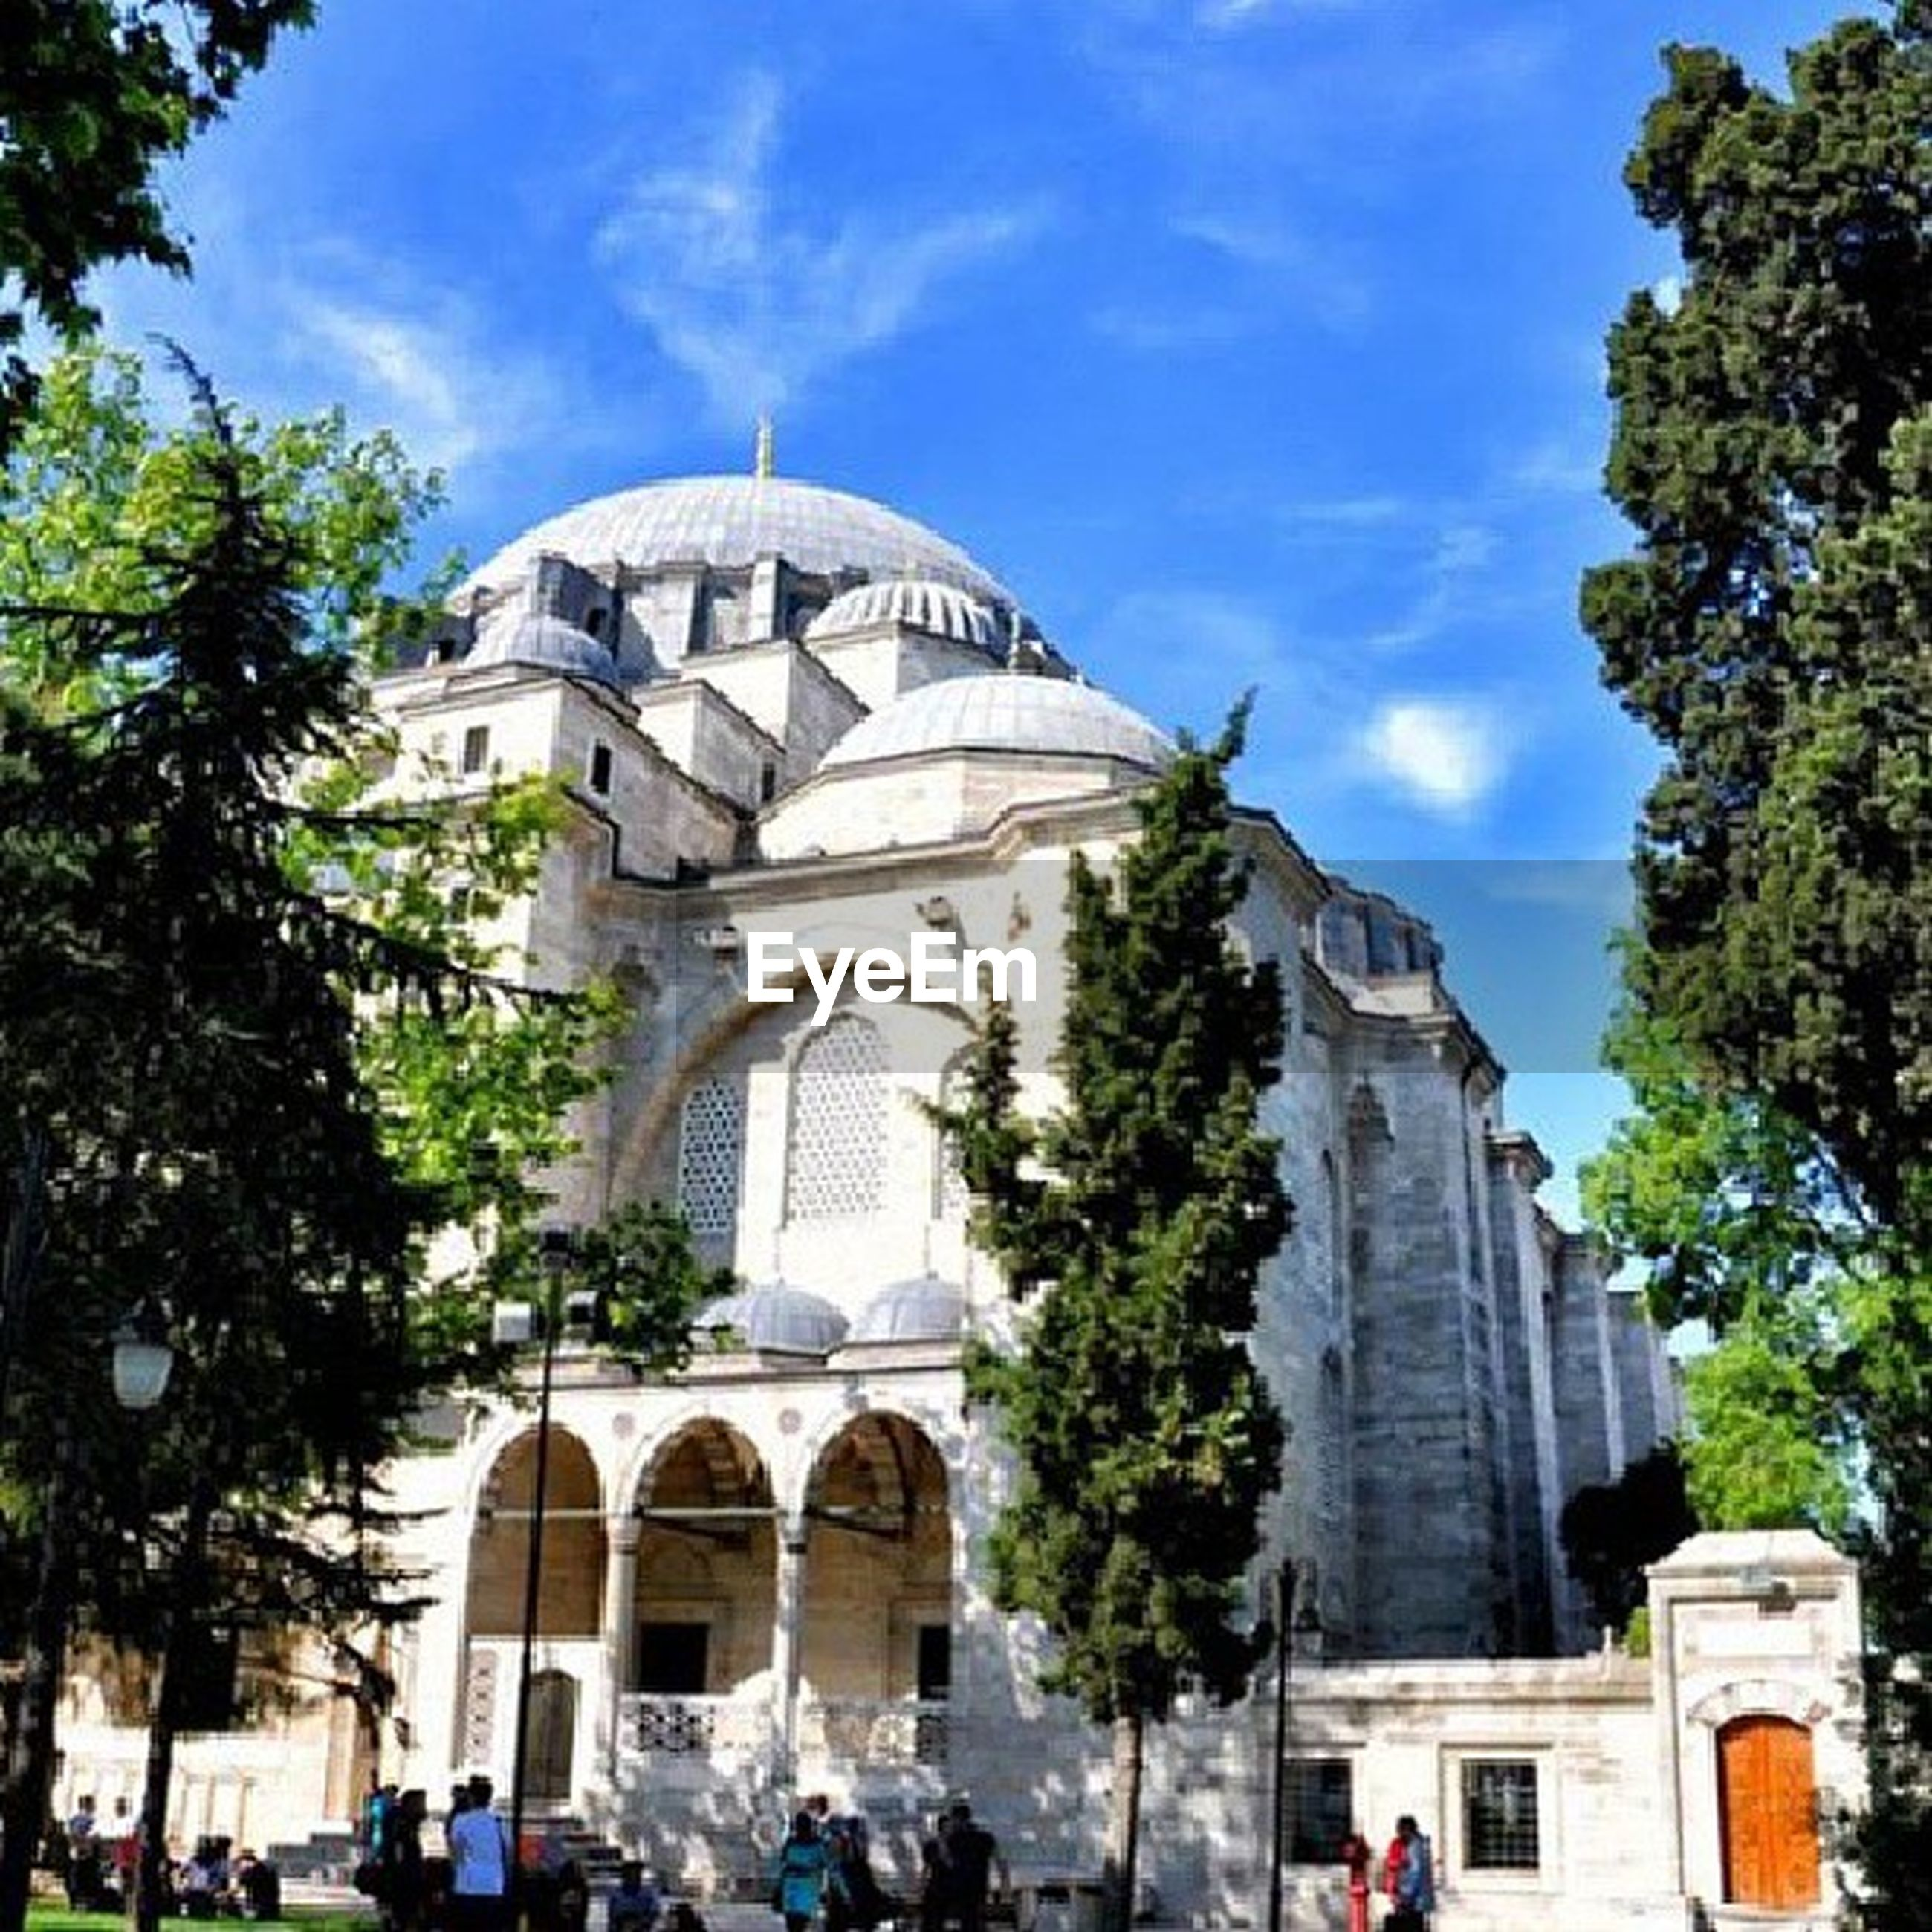 architecture, building exterior, built structure, tree, large group of people, sky, famous place, person, travel destinations, place of worship, religion, city, travel, tourism, men, tourist, spirituality, dome, facade